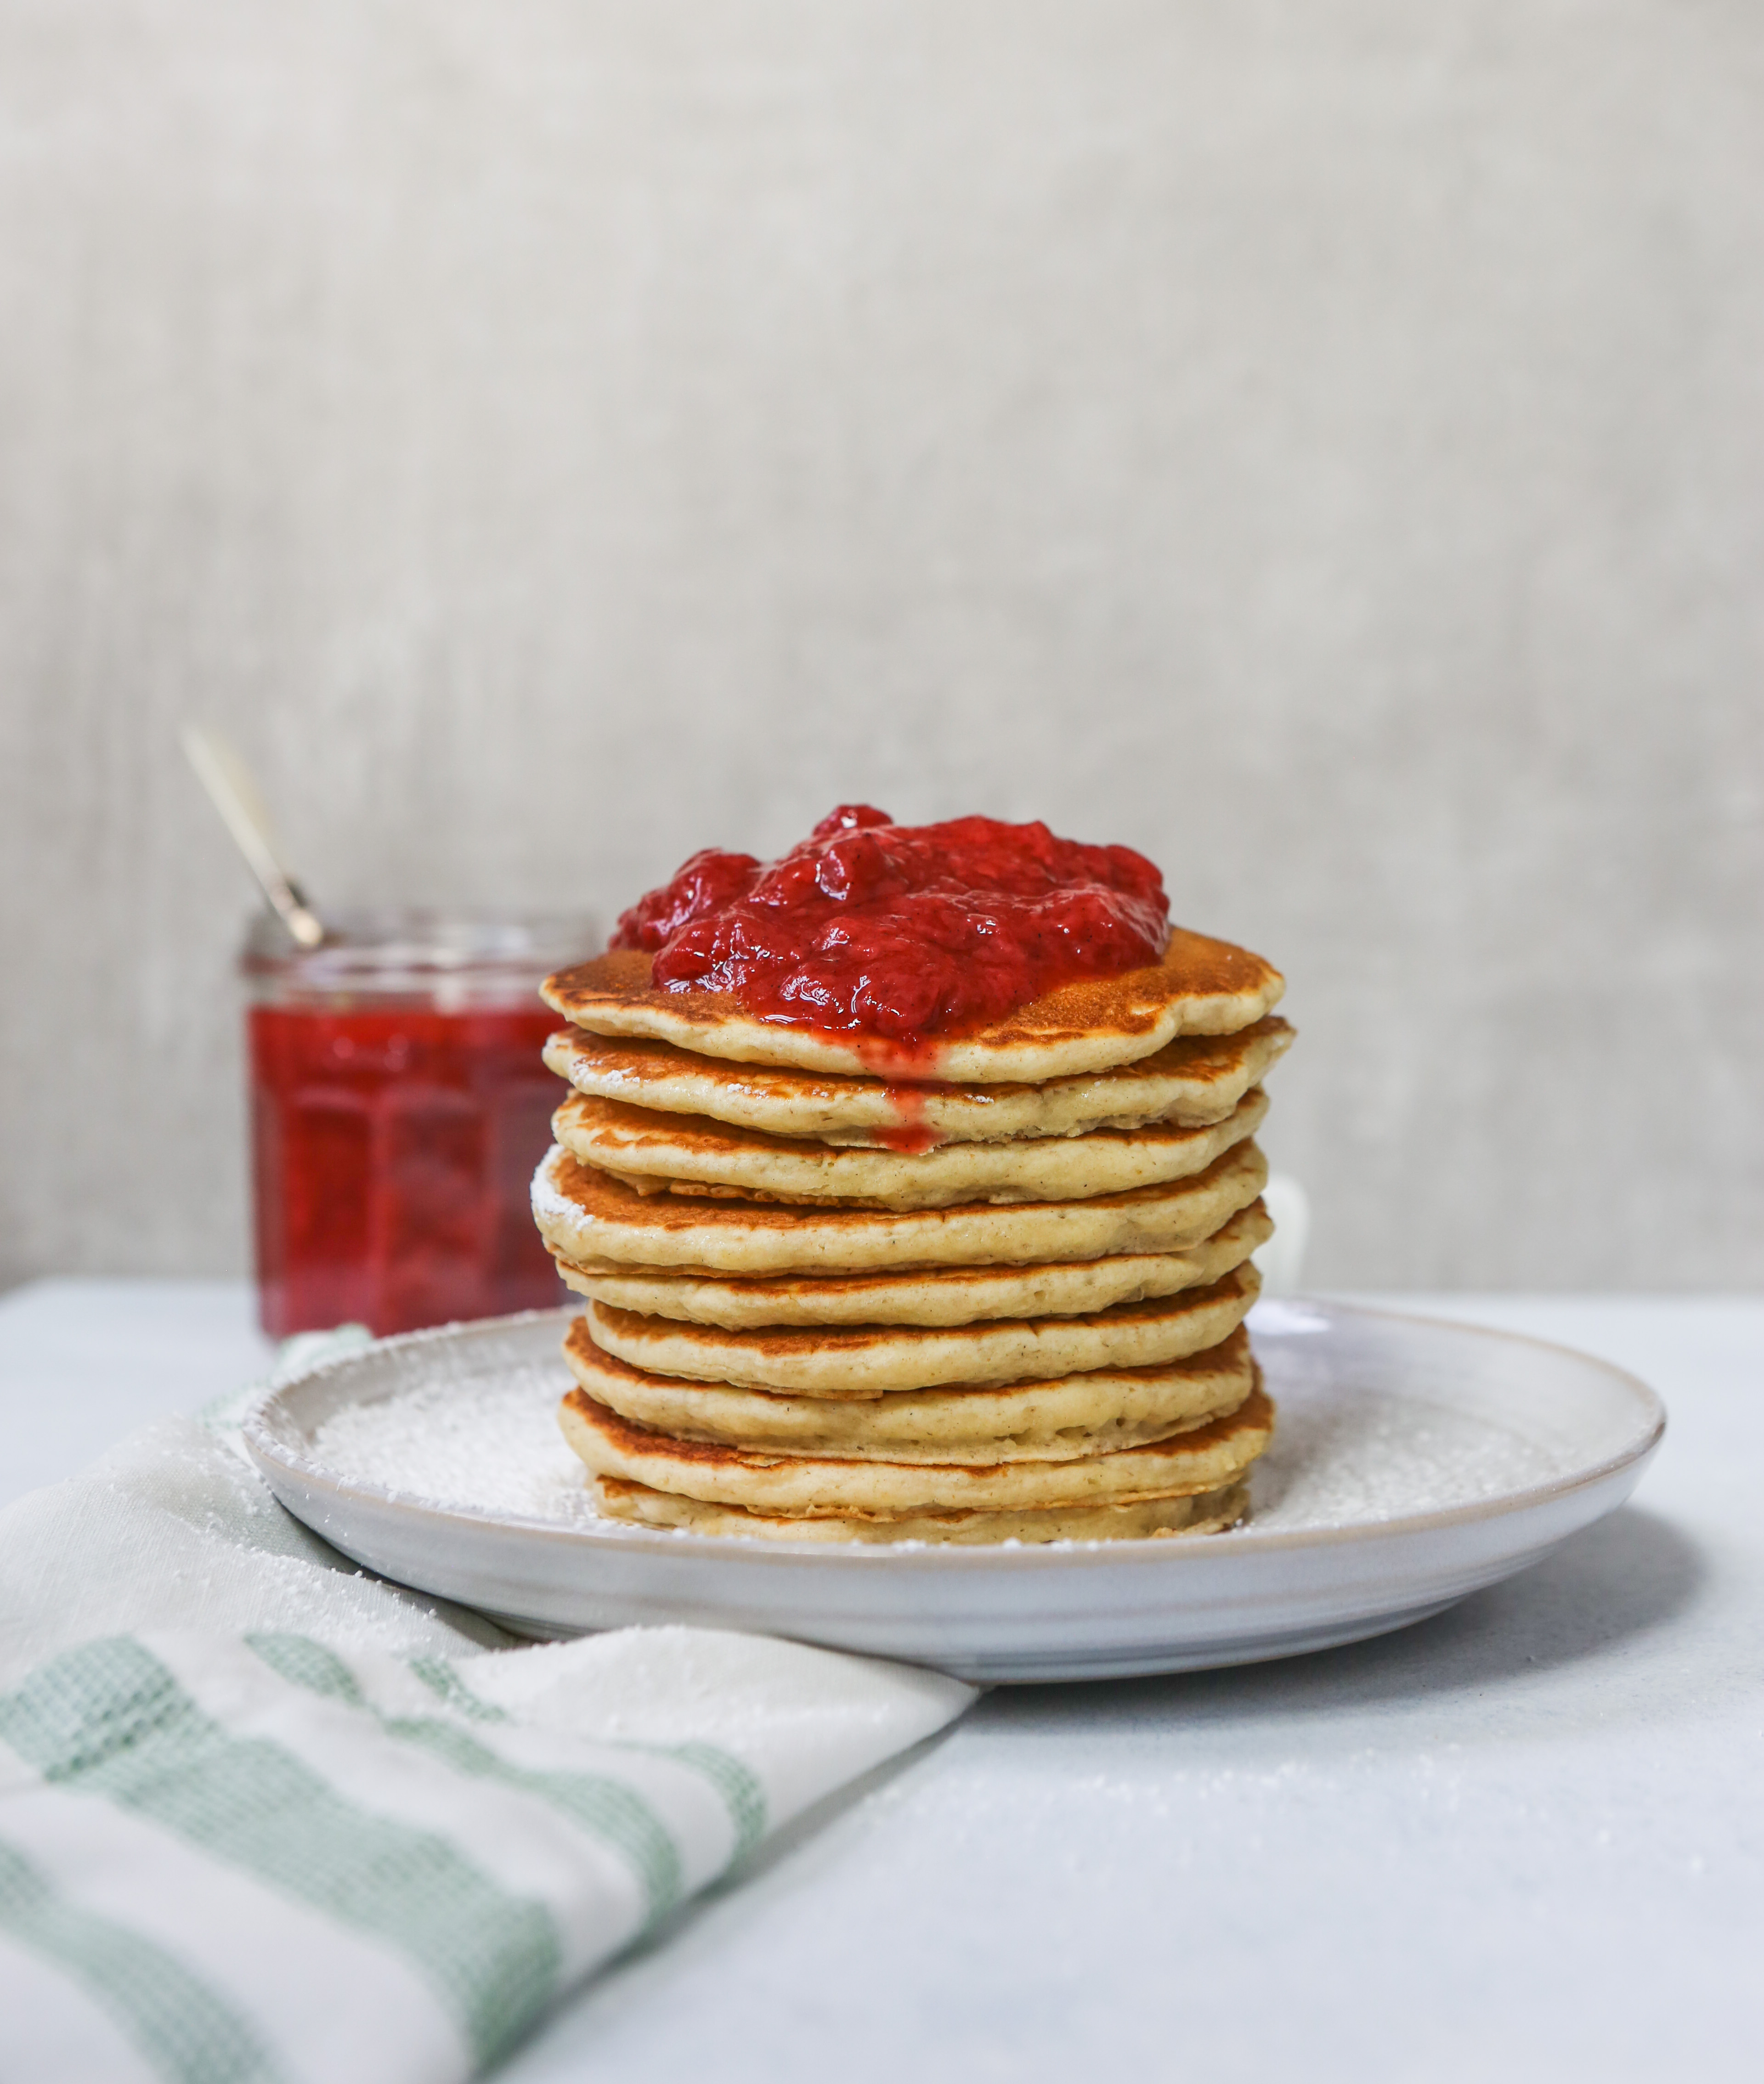 Toasted Oat Pancakes stacked on a white plate topped with a Quick Berry Compote